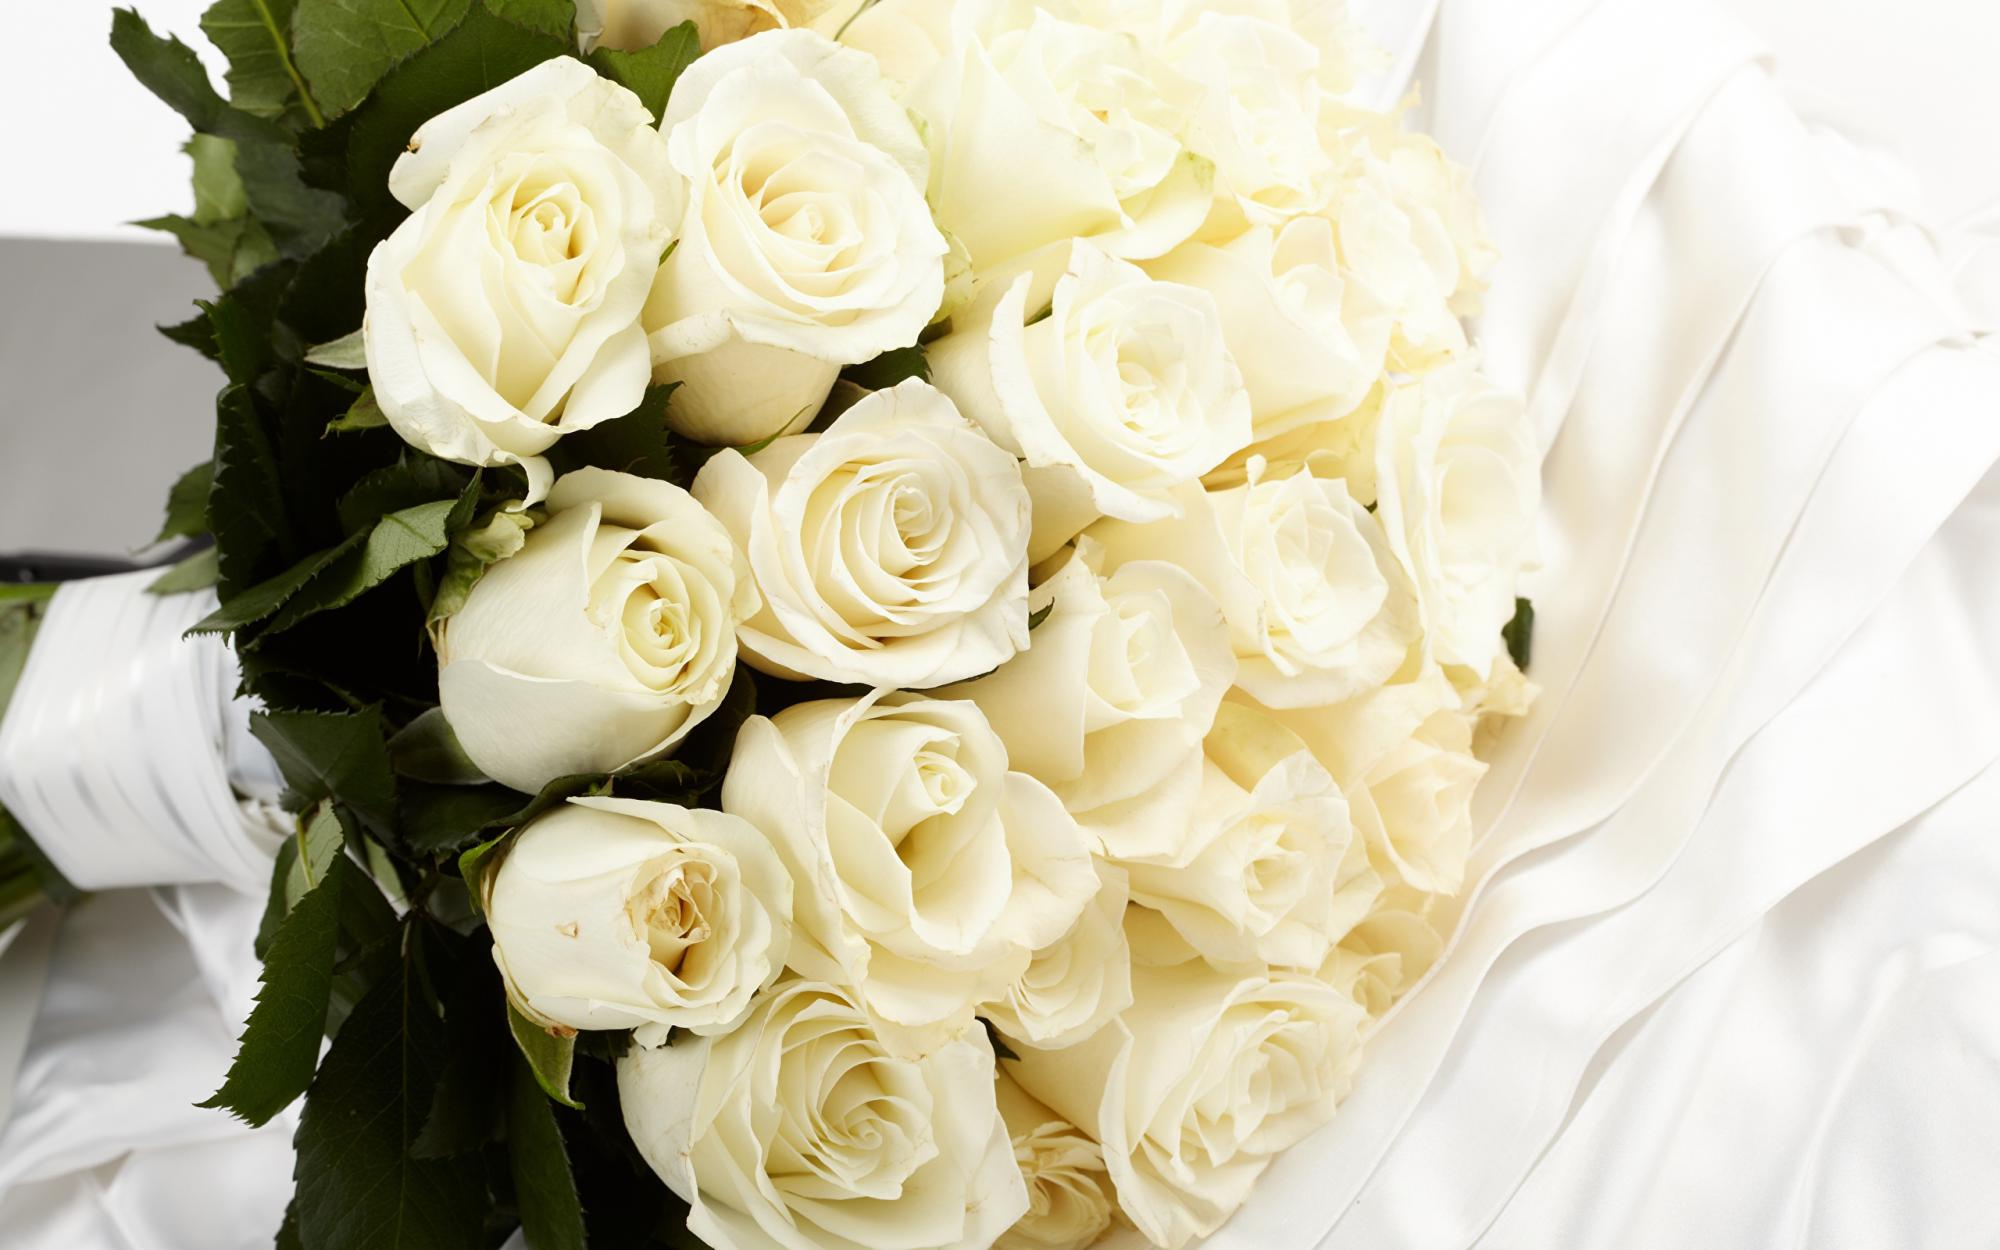 Roses_Bouquets_White_536100_2560x1600.jpg